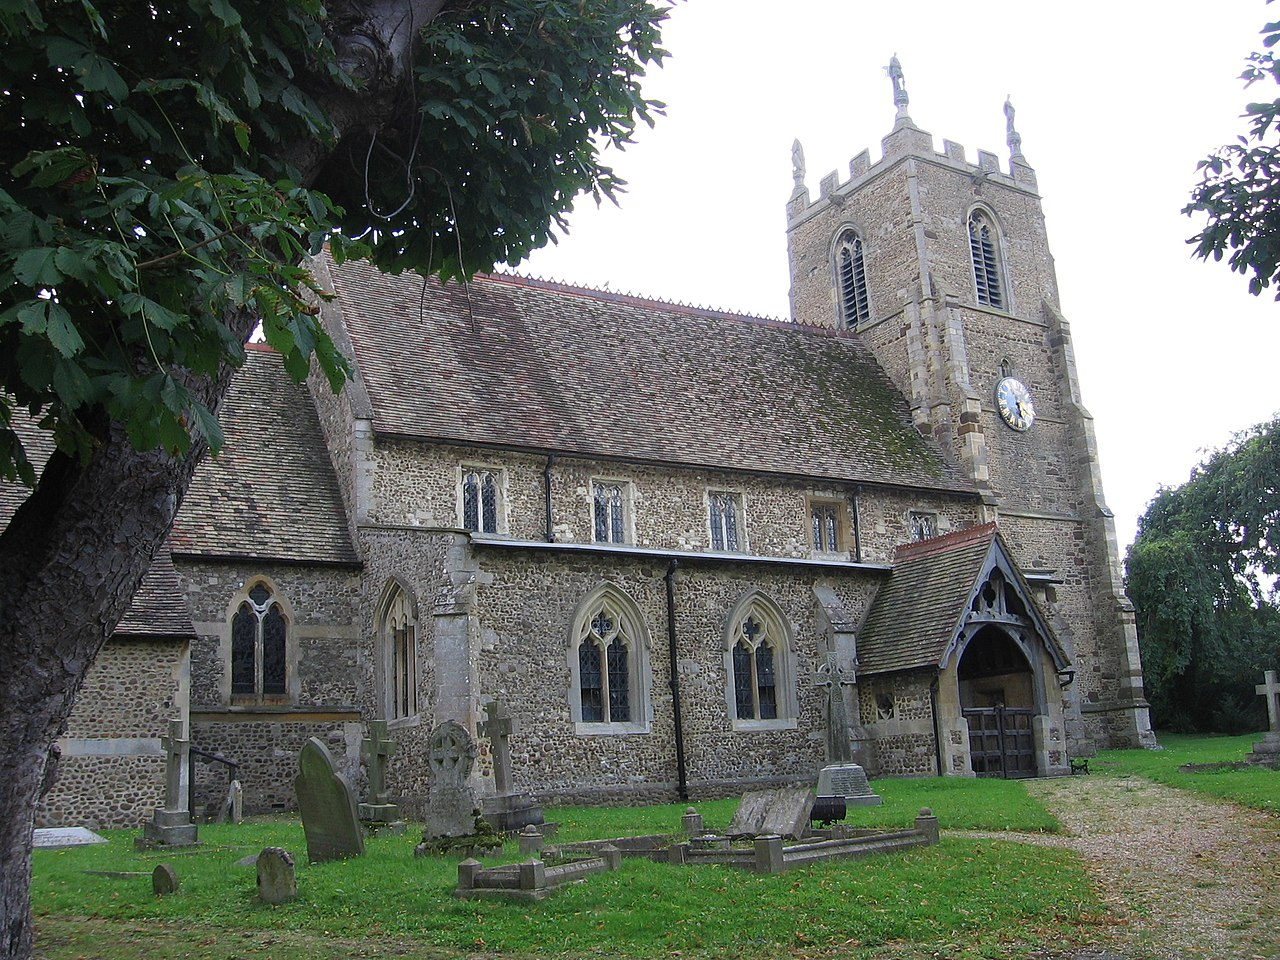 File:St Margaret's church in Abbotsley, Cambs.jpg - Wikipedia